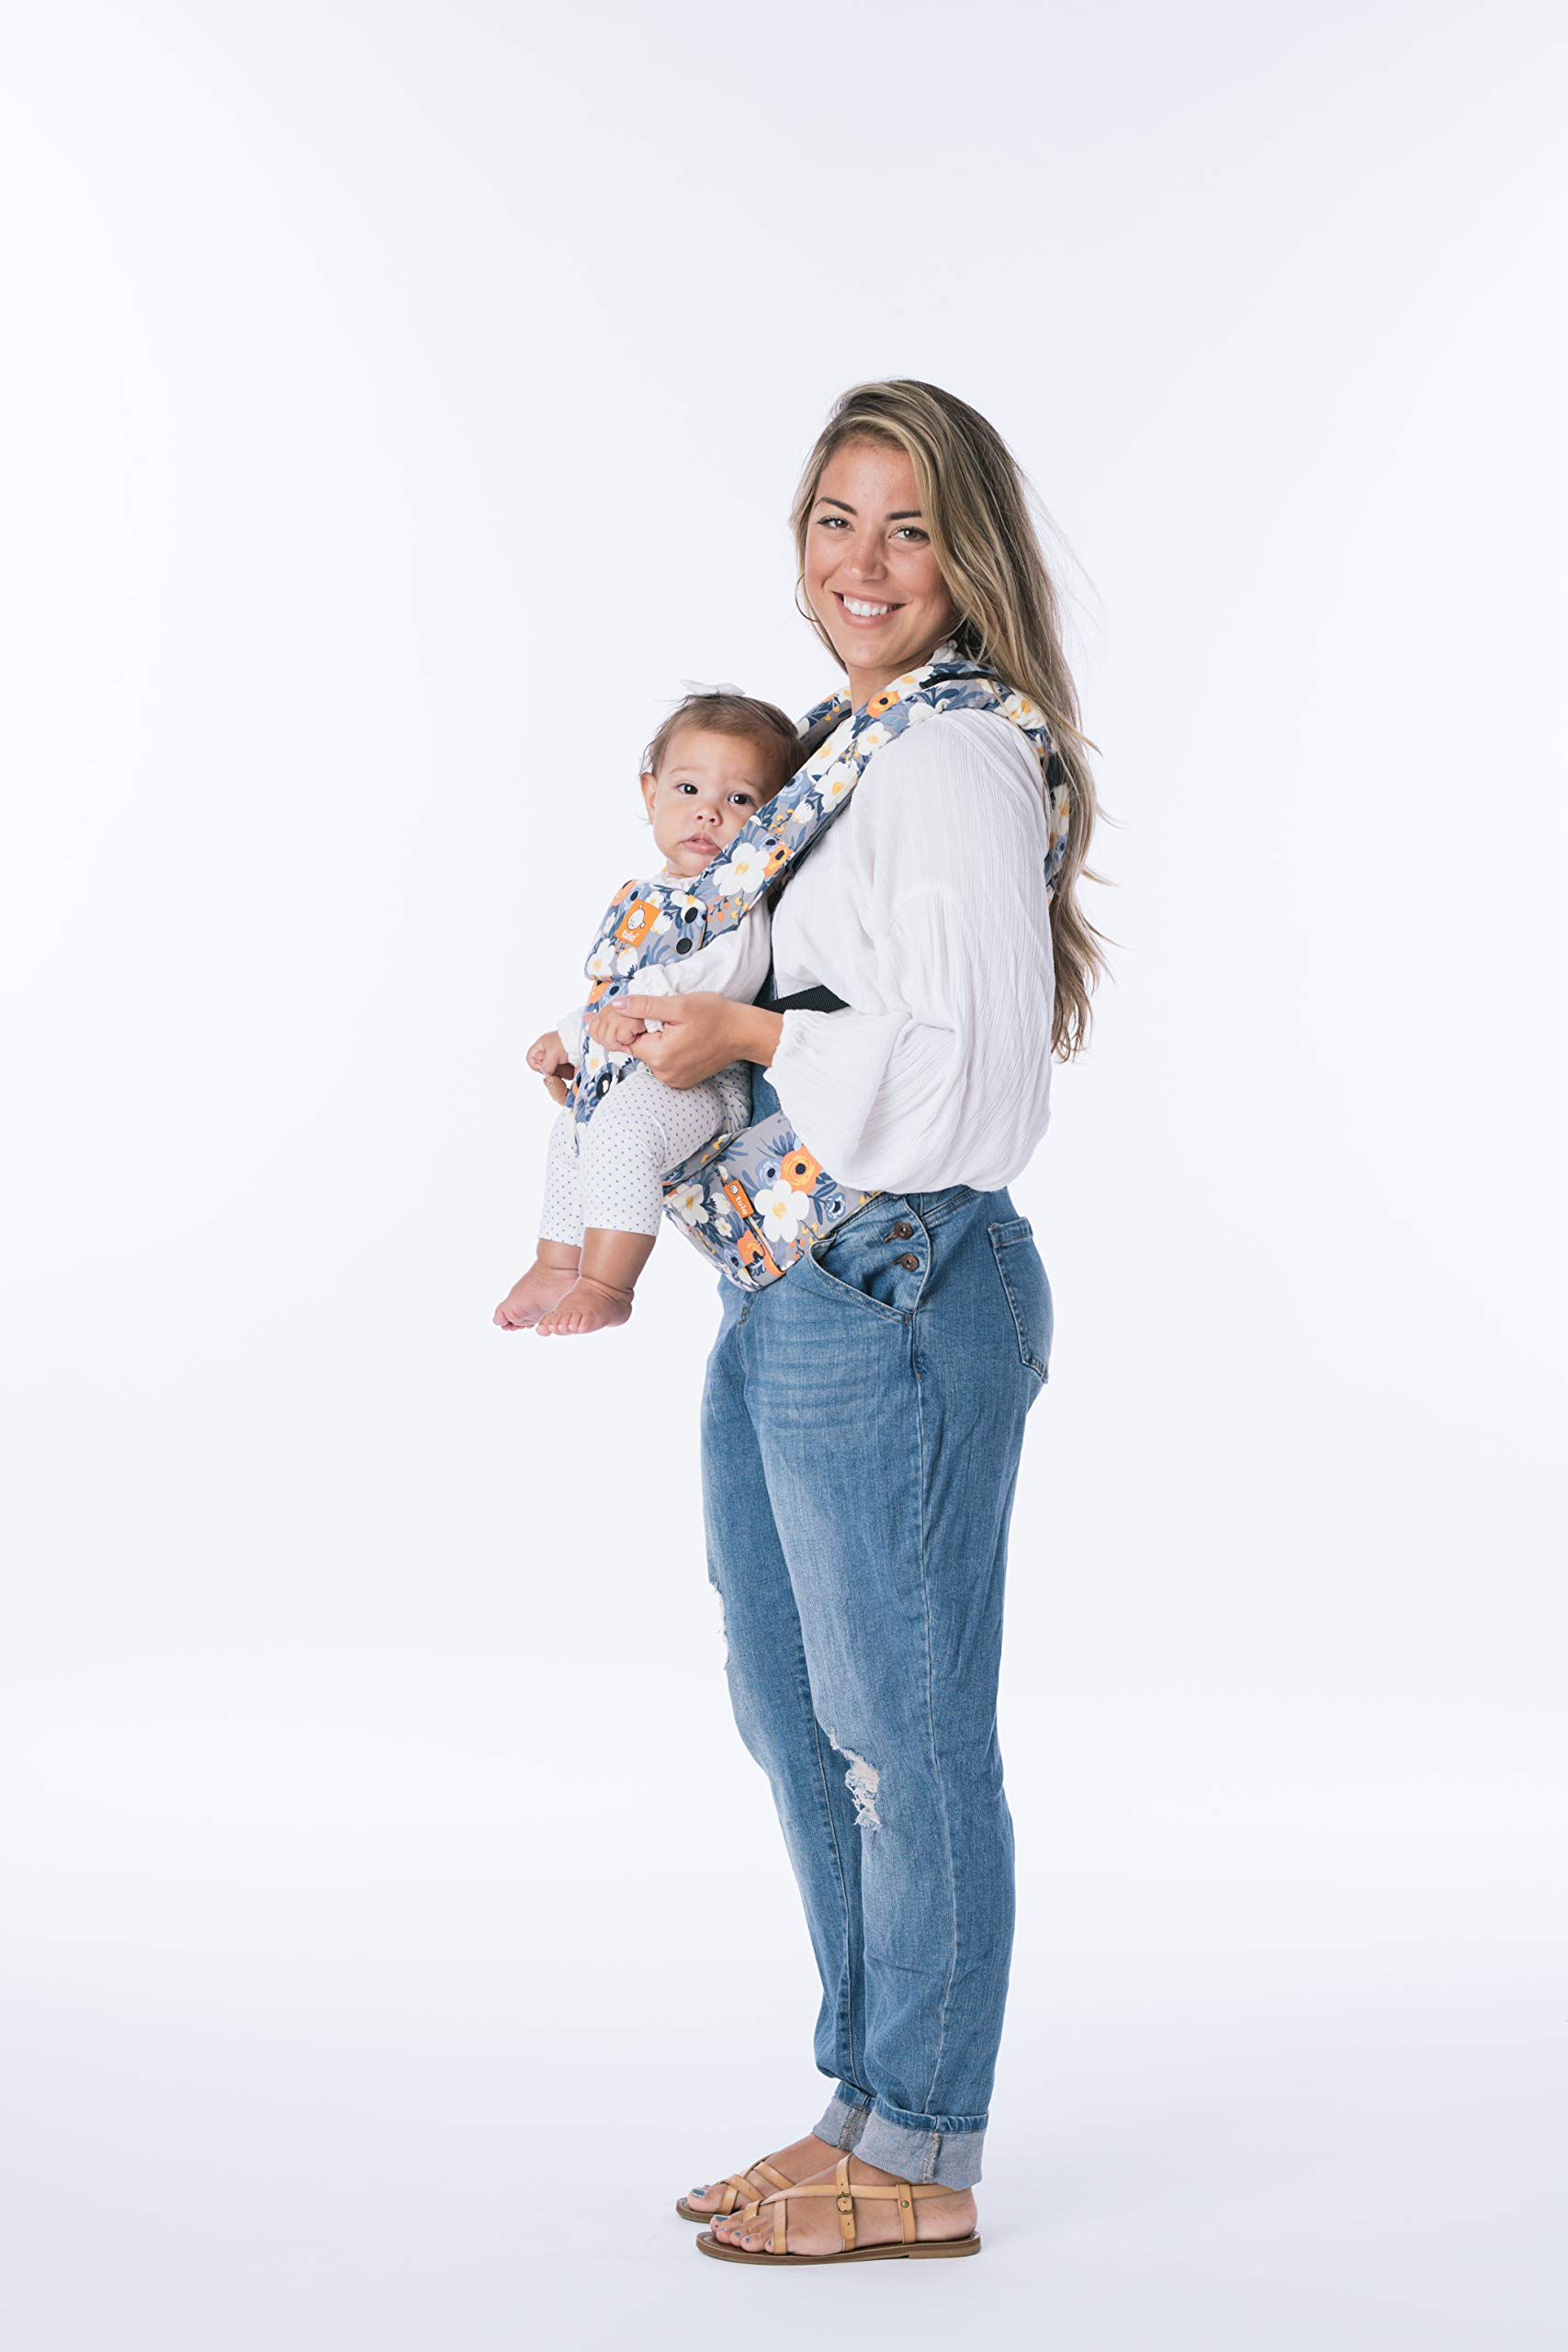 Tula Explore TBCA6F60 French Marigold - Ergonomic and Adjustable Baby Carrier with Front Position Outside Designed to Grow with Your Baby from 3, 2 to 20, 4 kg Without a Baby Cushion Tula Multiple door positions including front out, front inward and back Each position provides a natural and ergonomic position ideal for a comfortable fit that promotes healthy hip and spine development Baby carrier with an innovative main panel with an easy to adjust design in three width settings so it can be used from 3, 2 to 20, 4 kg without the need for a baby cushion. The Explore Baby Carrier has a padded adjustable neck support that can be used in multiple positions to provide head and neck support for newborn or sleeping babies. 4